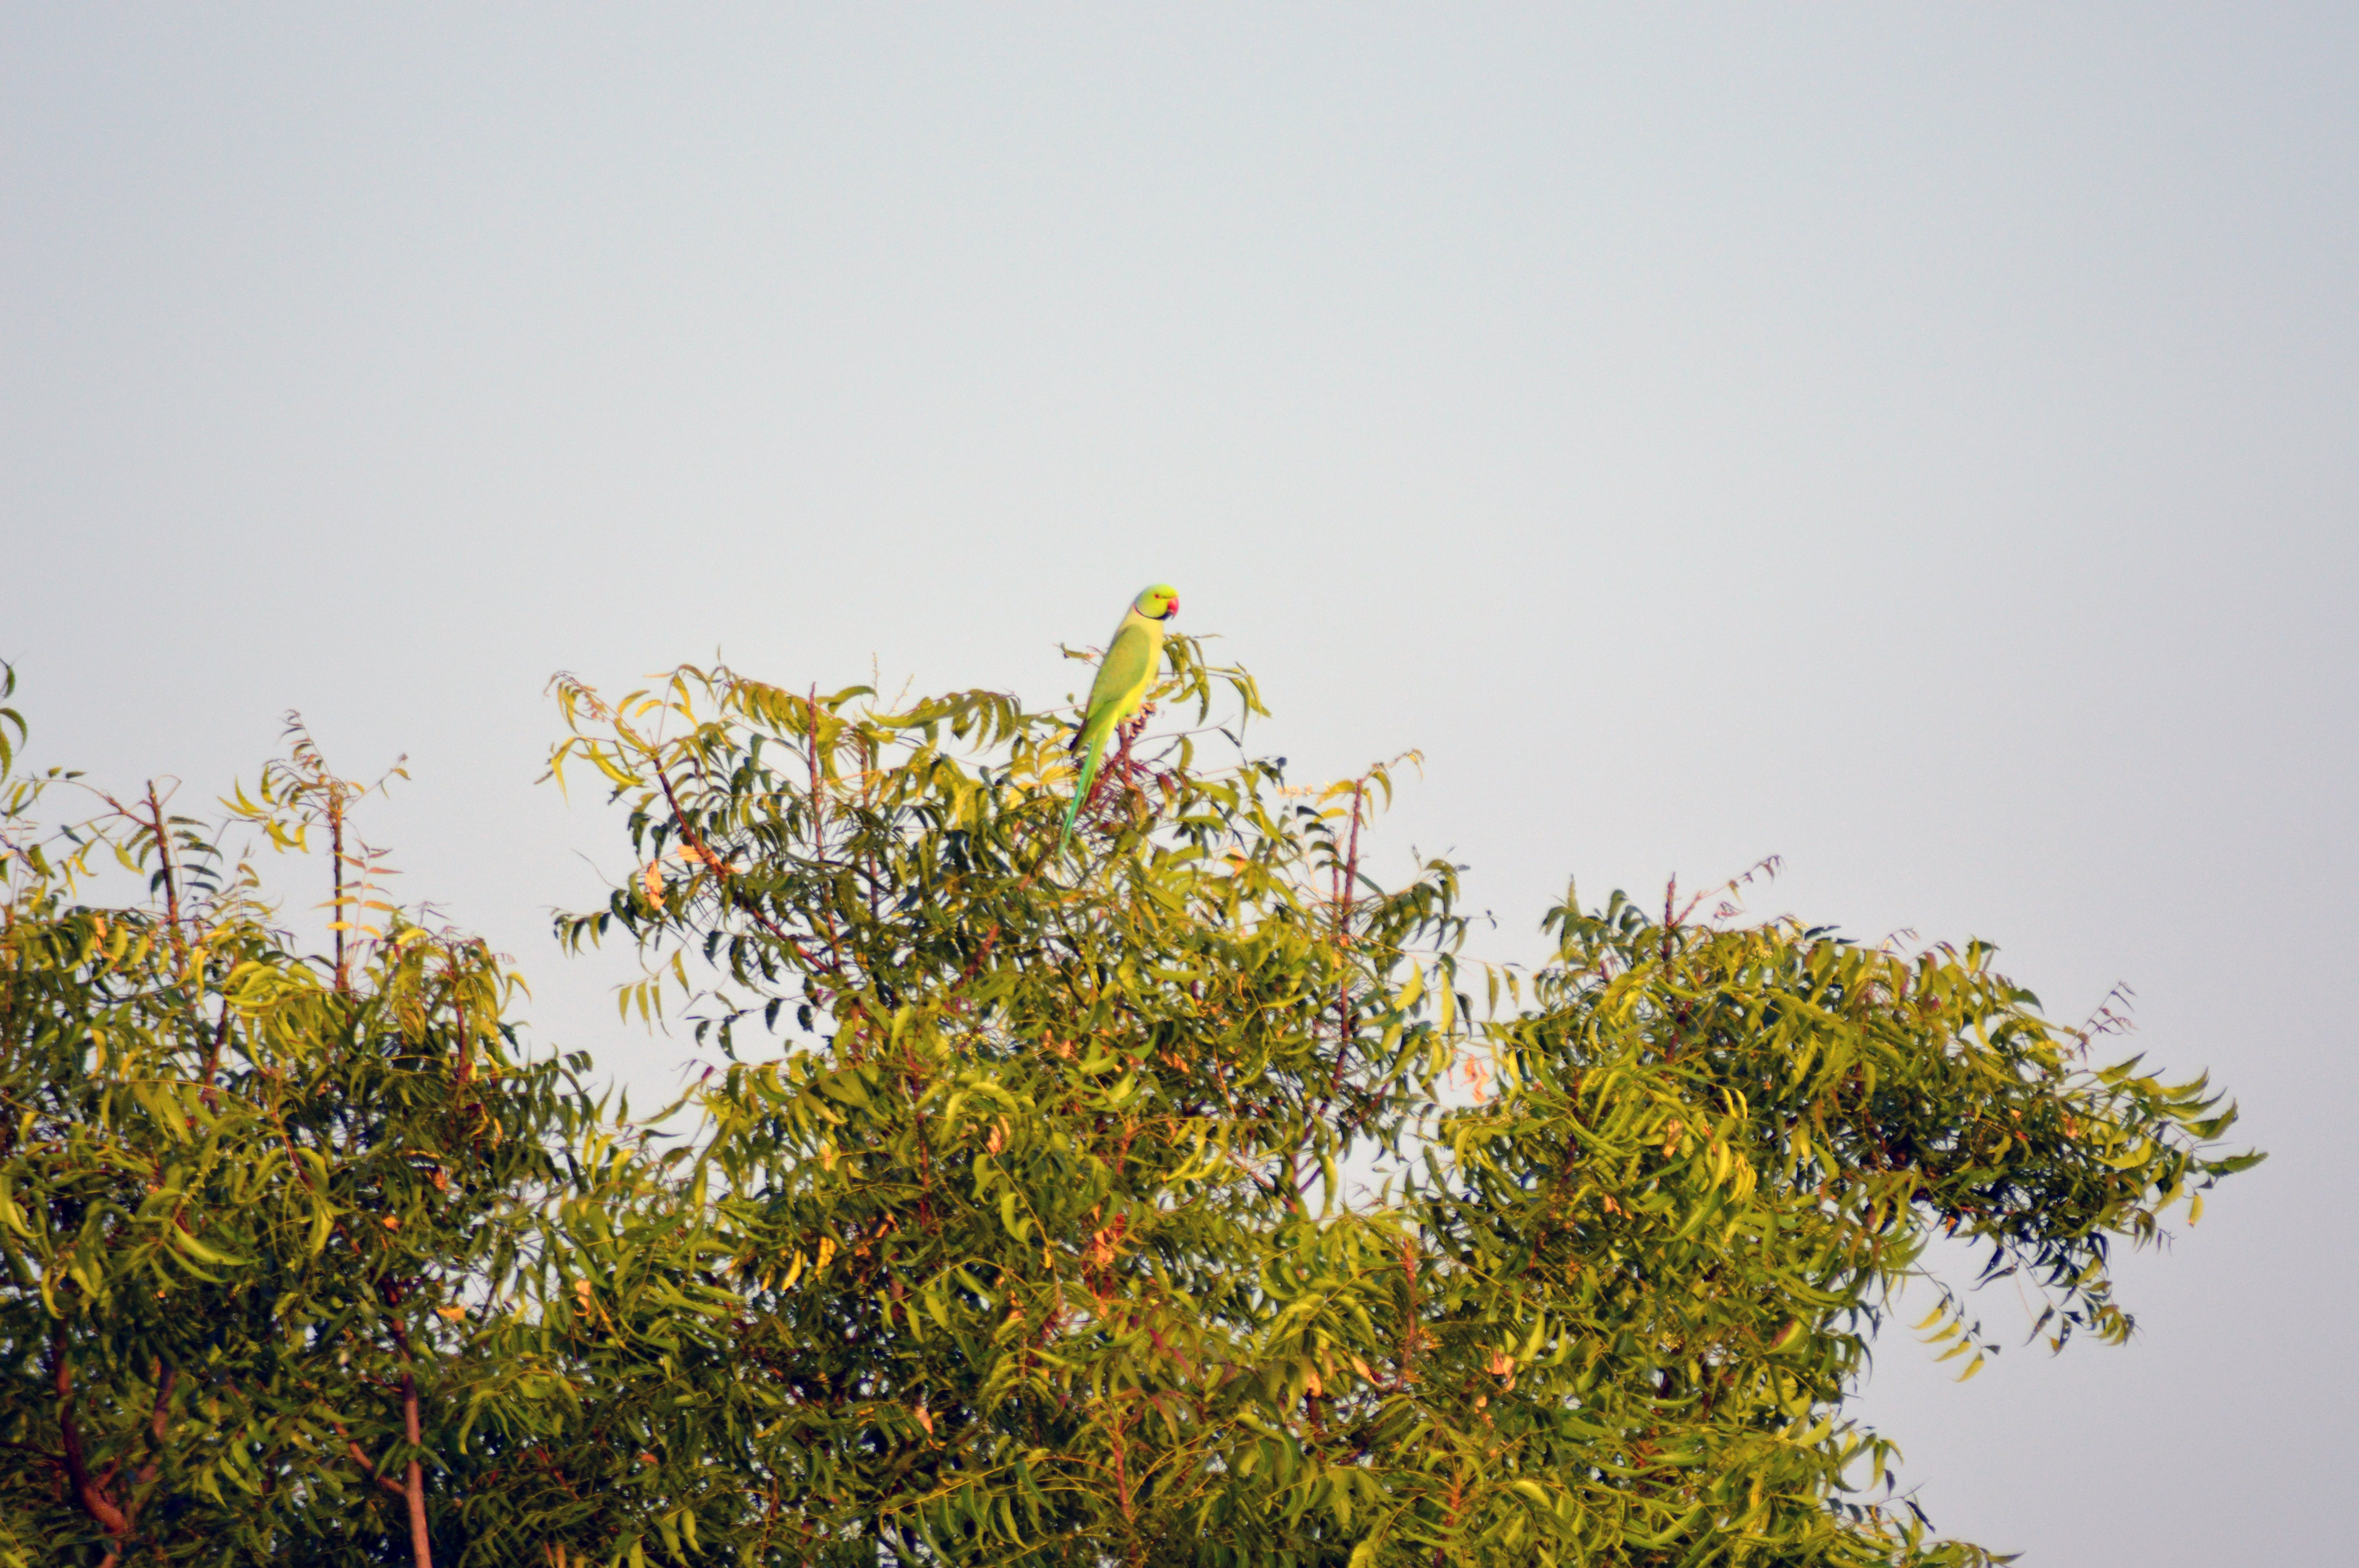 Green and Red Beaked Bird on Green Leaf Tree